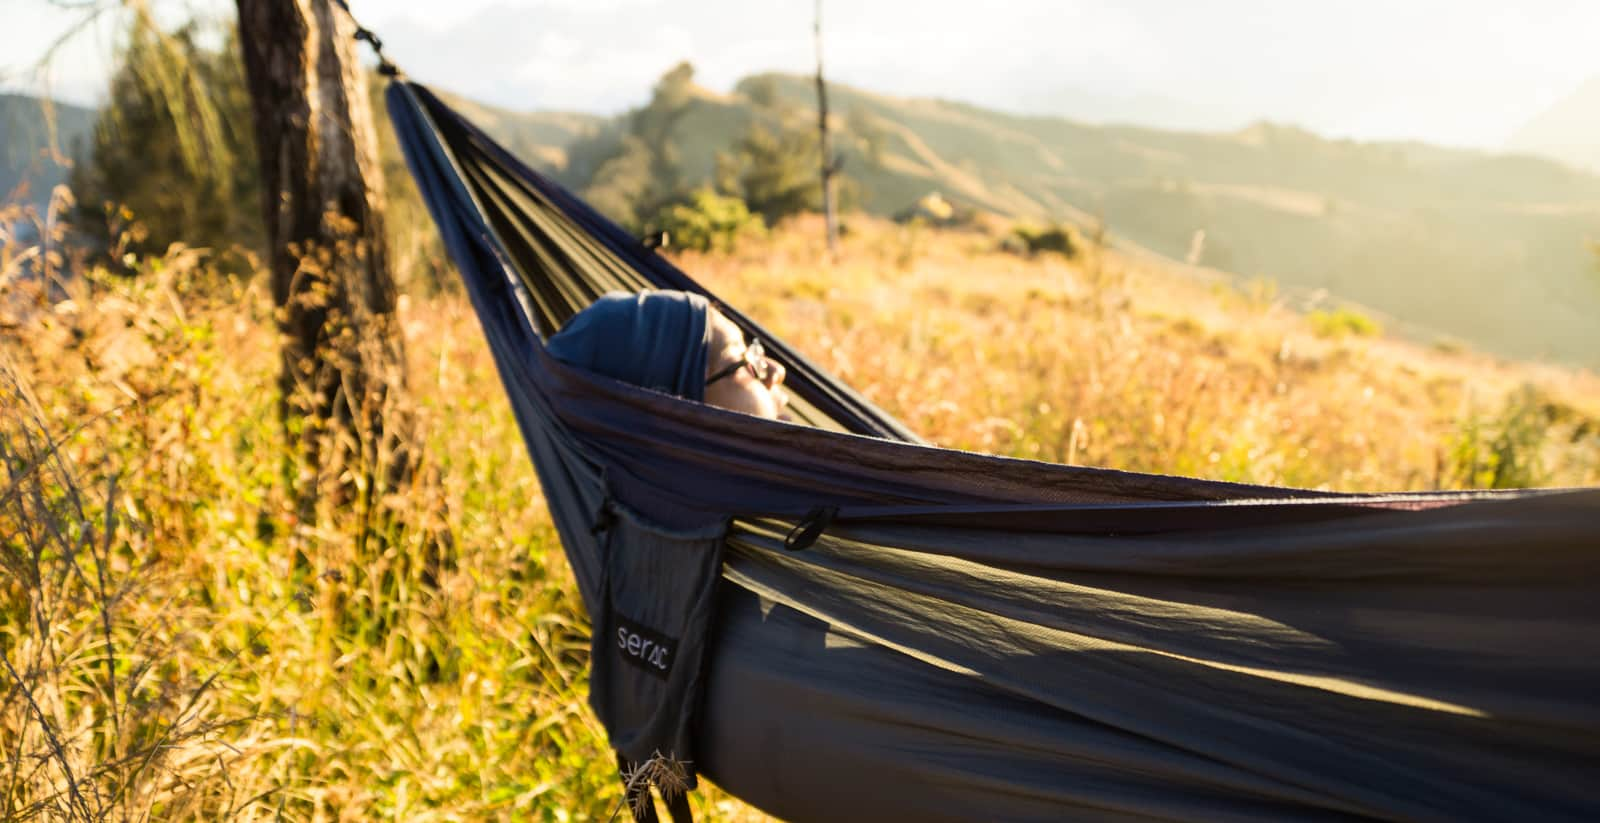 sleeping in a hammock is good for your back